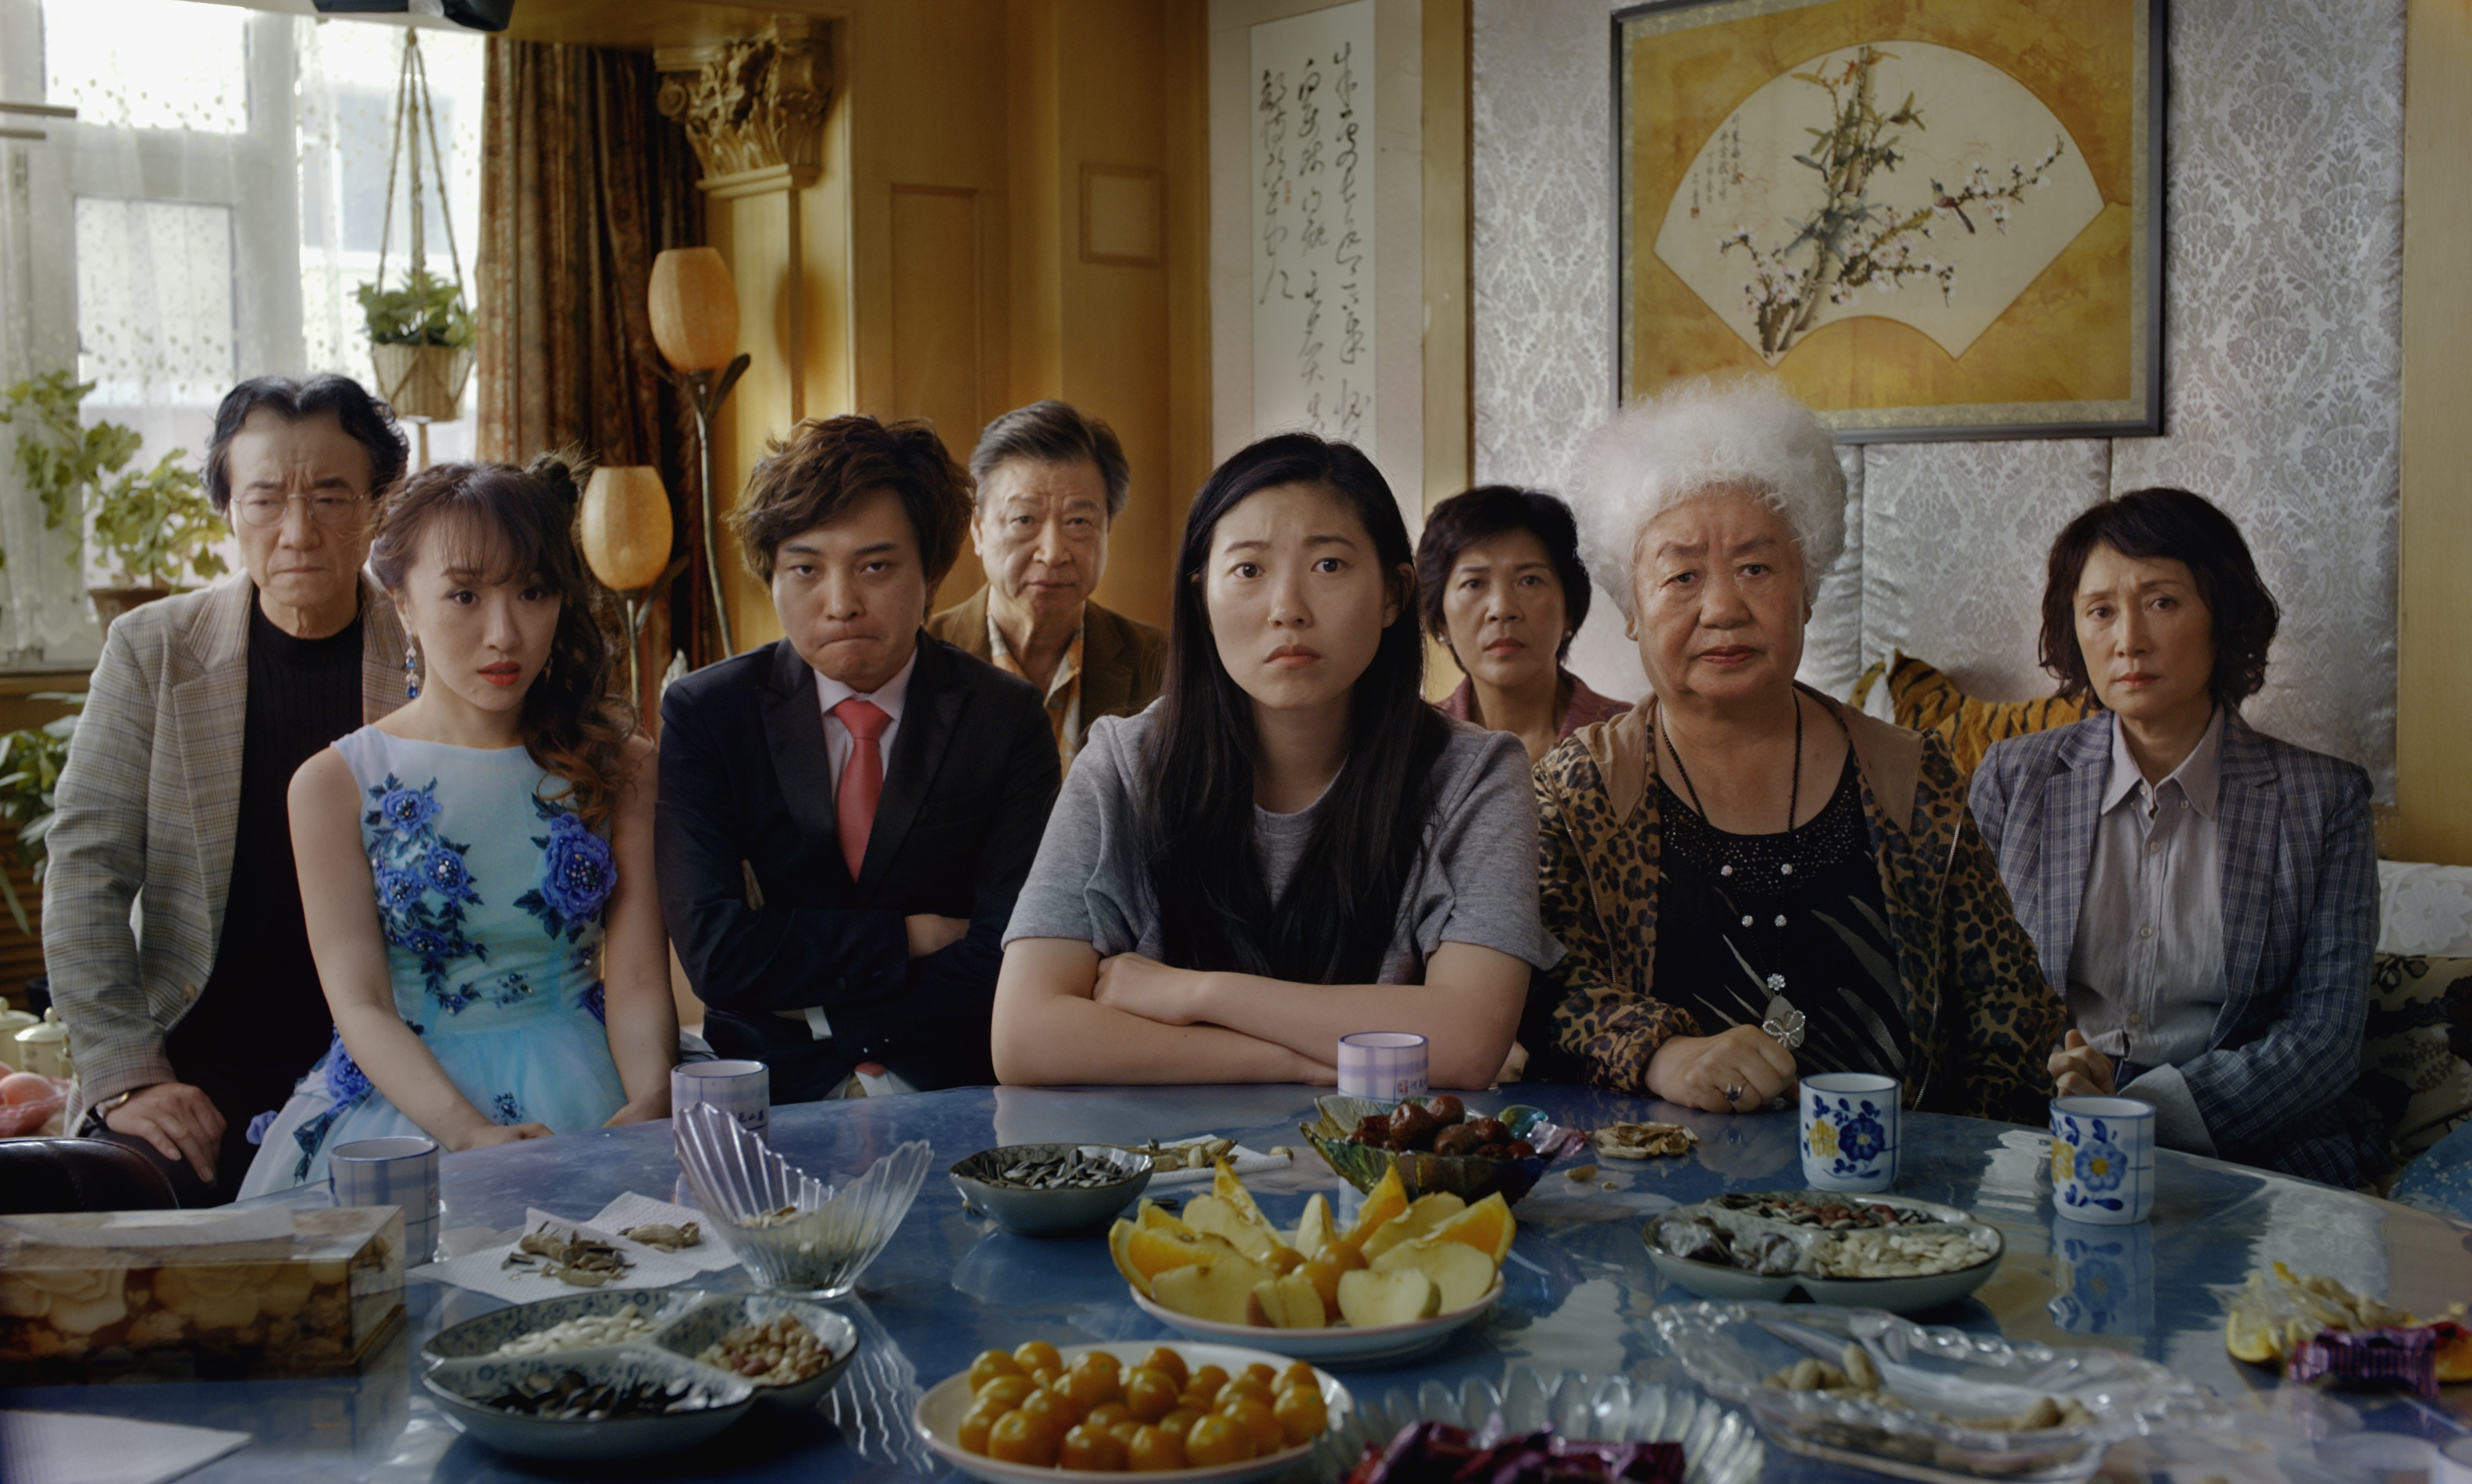 Awkwafina stars in The Farewell, written and directed by Lulu Wang.